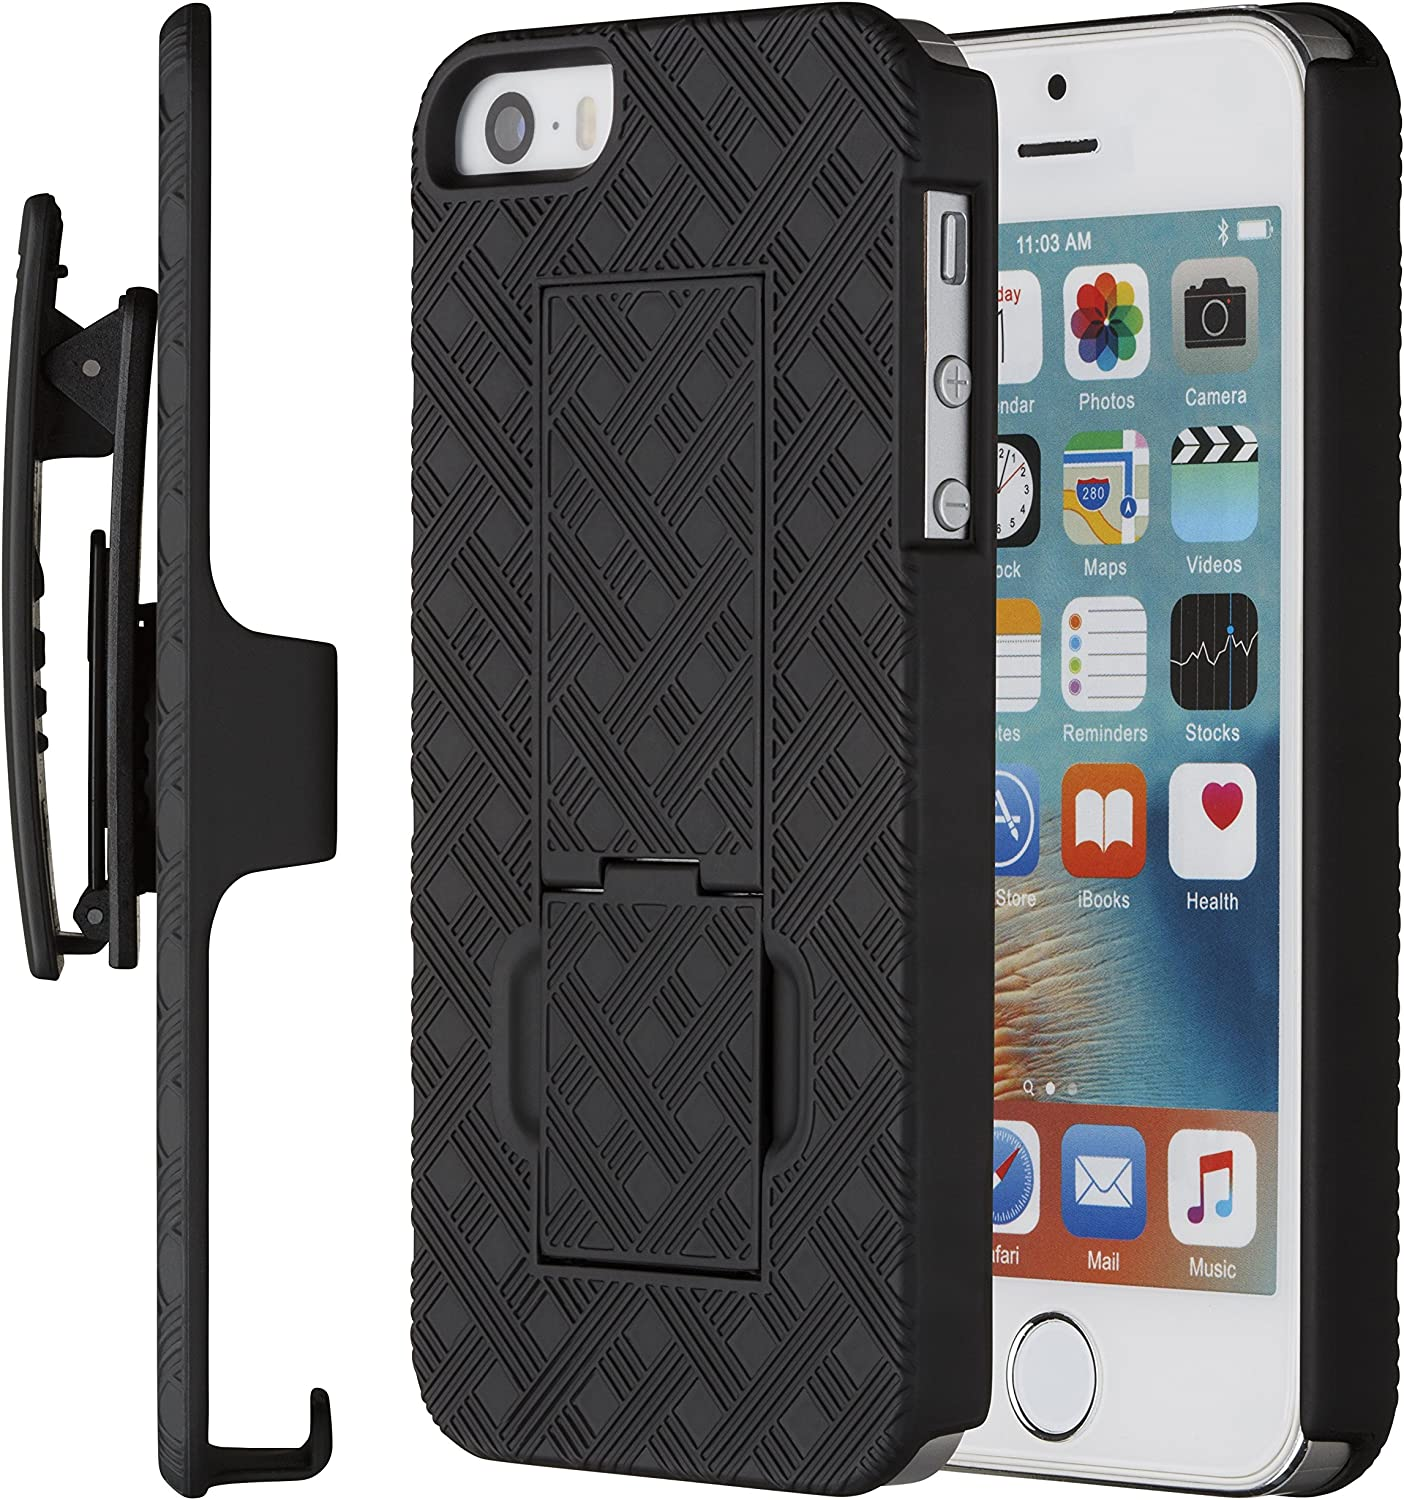 Moona iPhone SE Case, iPhone 5 5S Case, Shell Holster Combo Case for Apple iPhone SE and iPhone 5 / 5S with Kickstand & Belt Clip 10 Year Warranty - iPhone SE & 5S Thin Holster Belt Clip Case